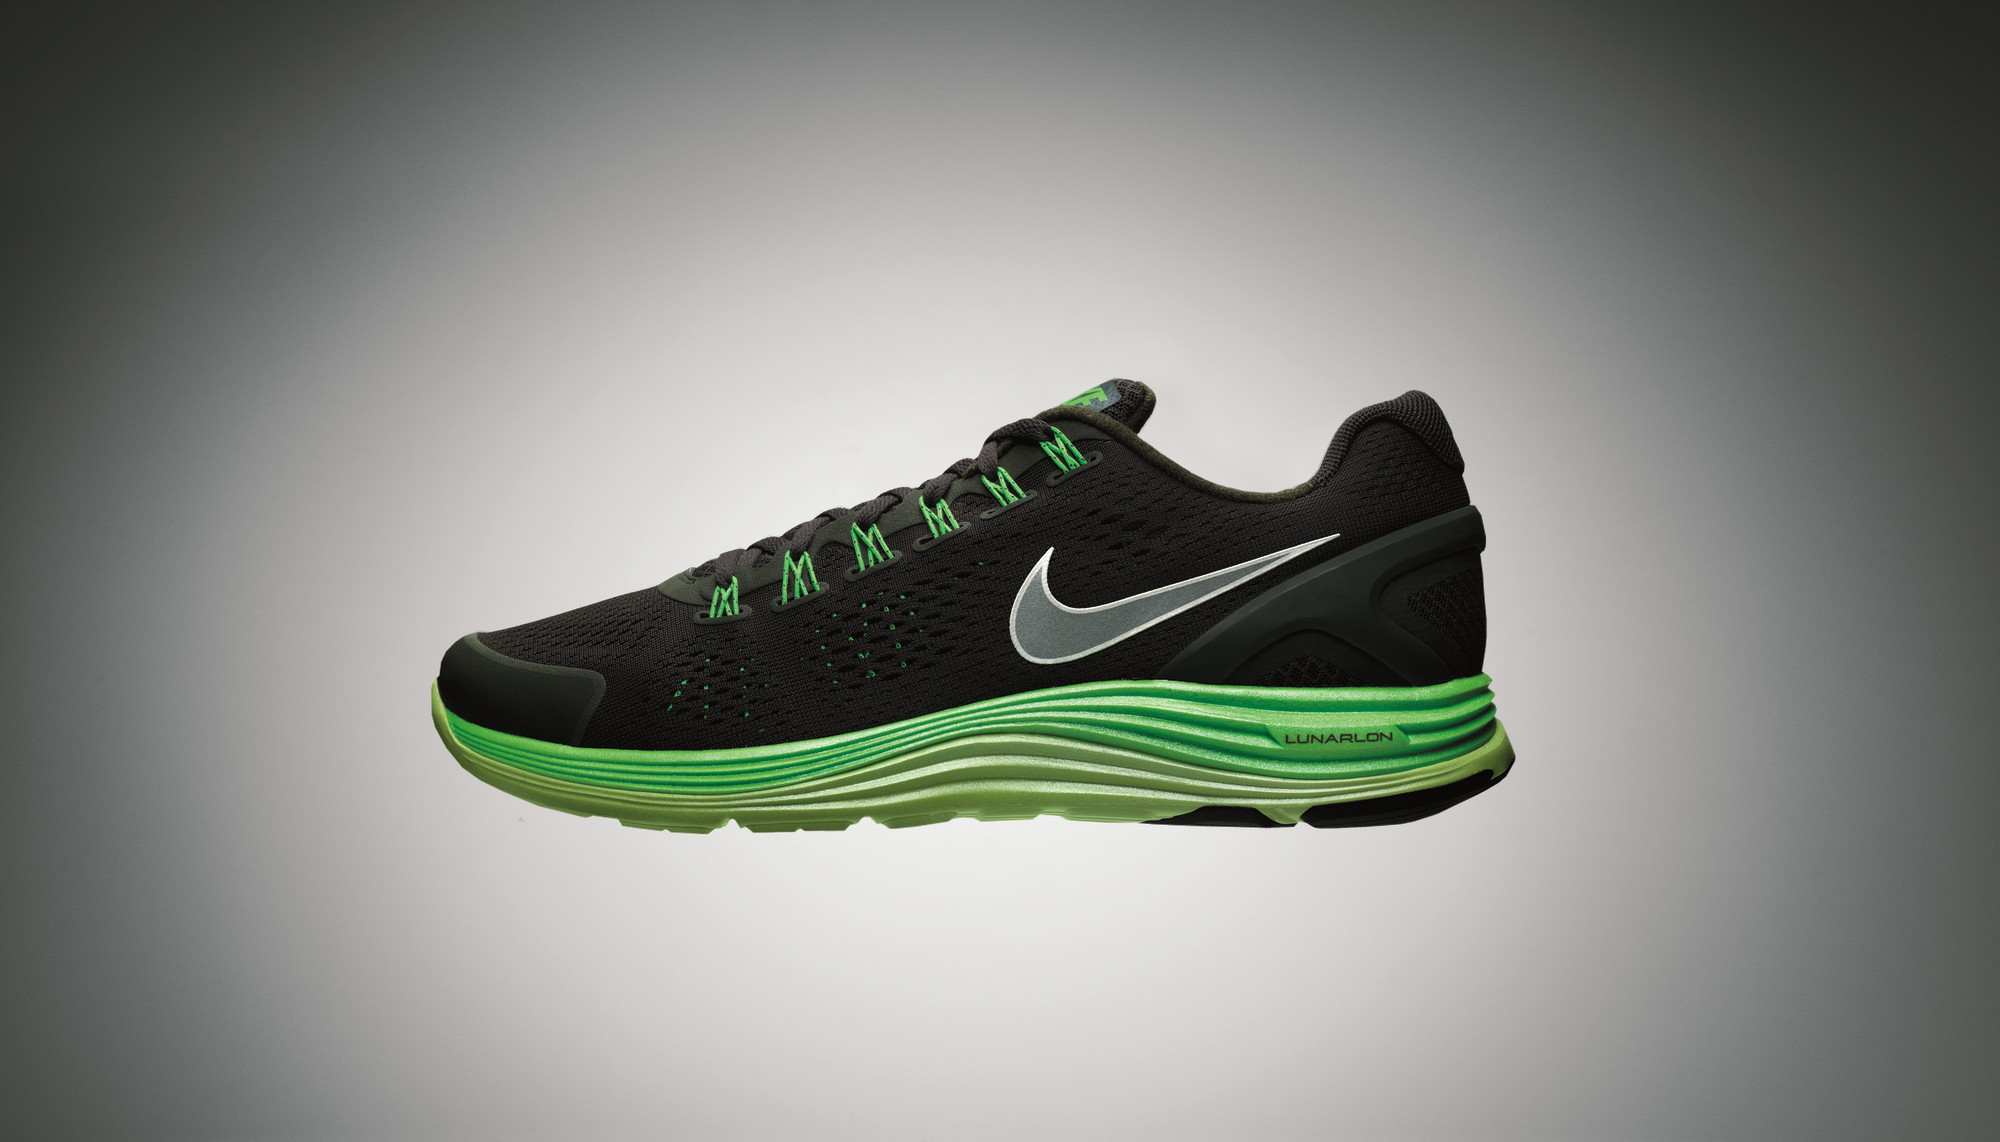 nike tennis shoes price philippines